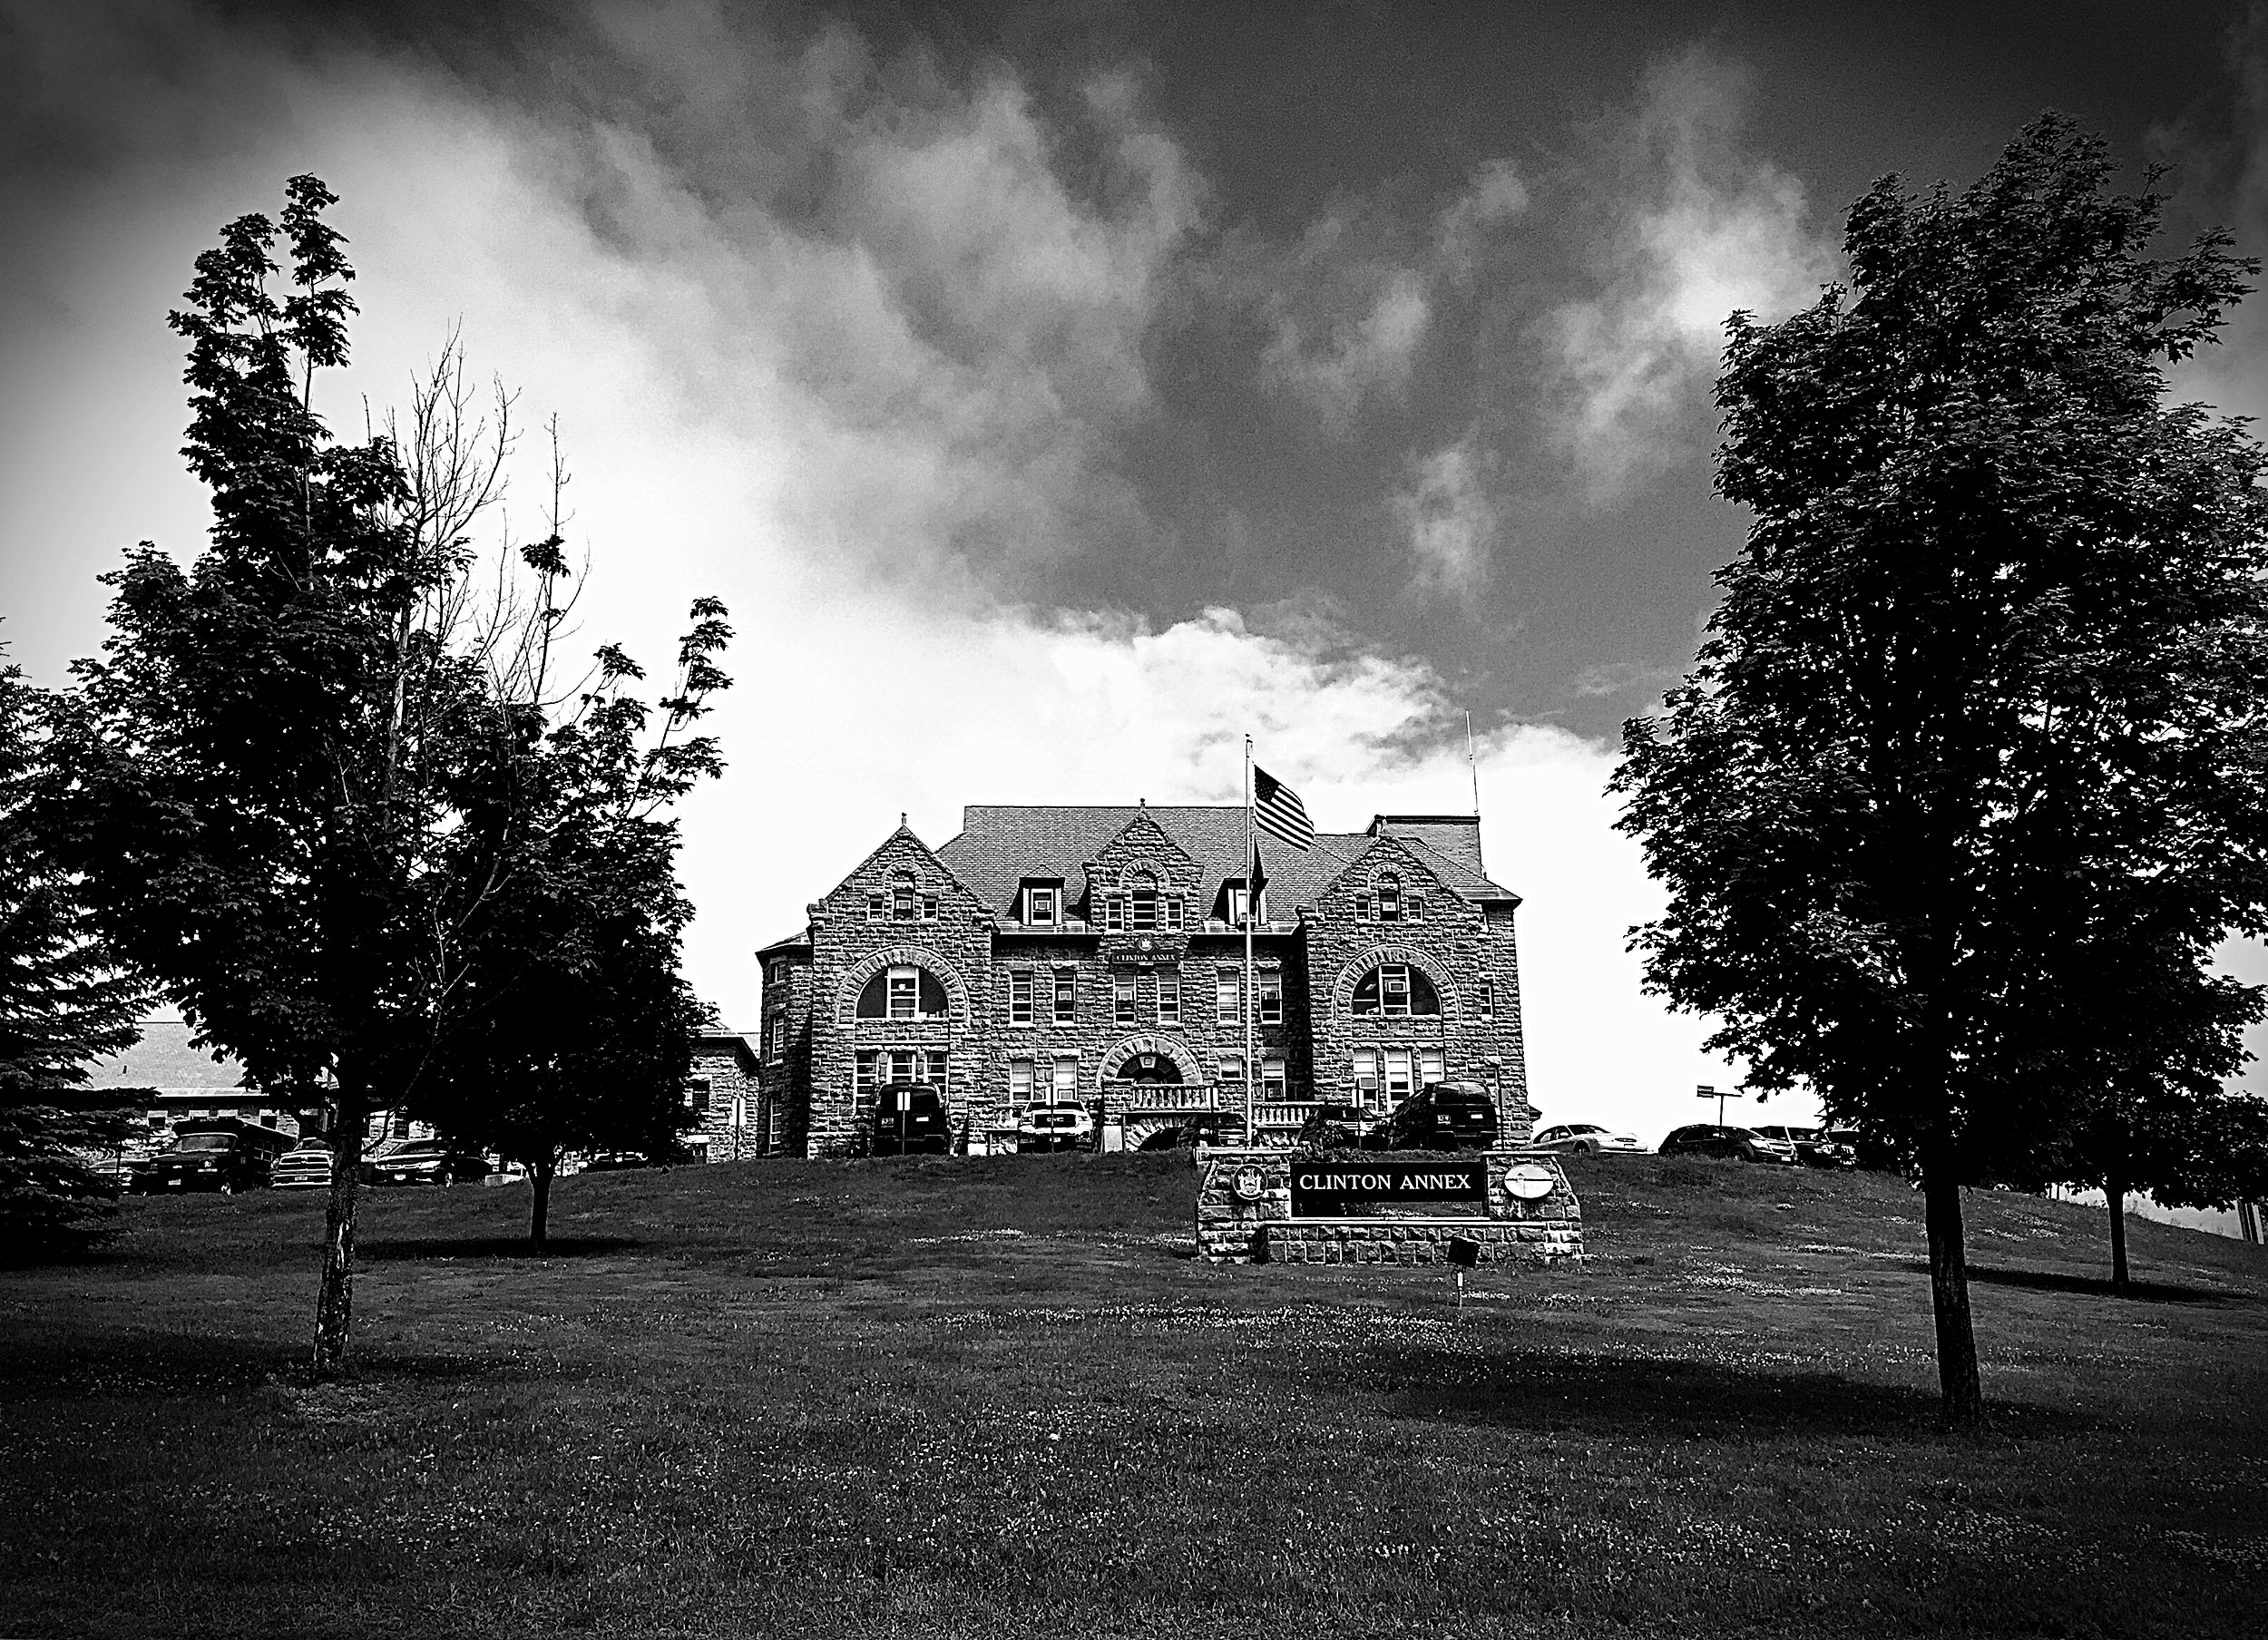 Clinton Annex, which houses the medium security prisoners at Clinton Correctional Facility. (Chelsia Rose Marcius/June 19, 2015)